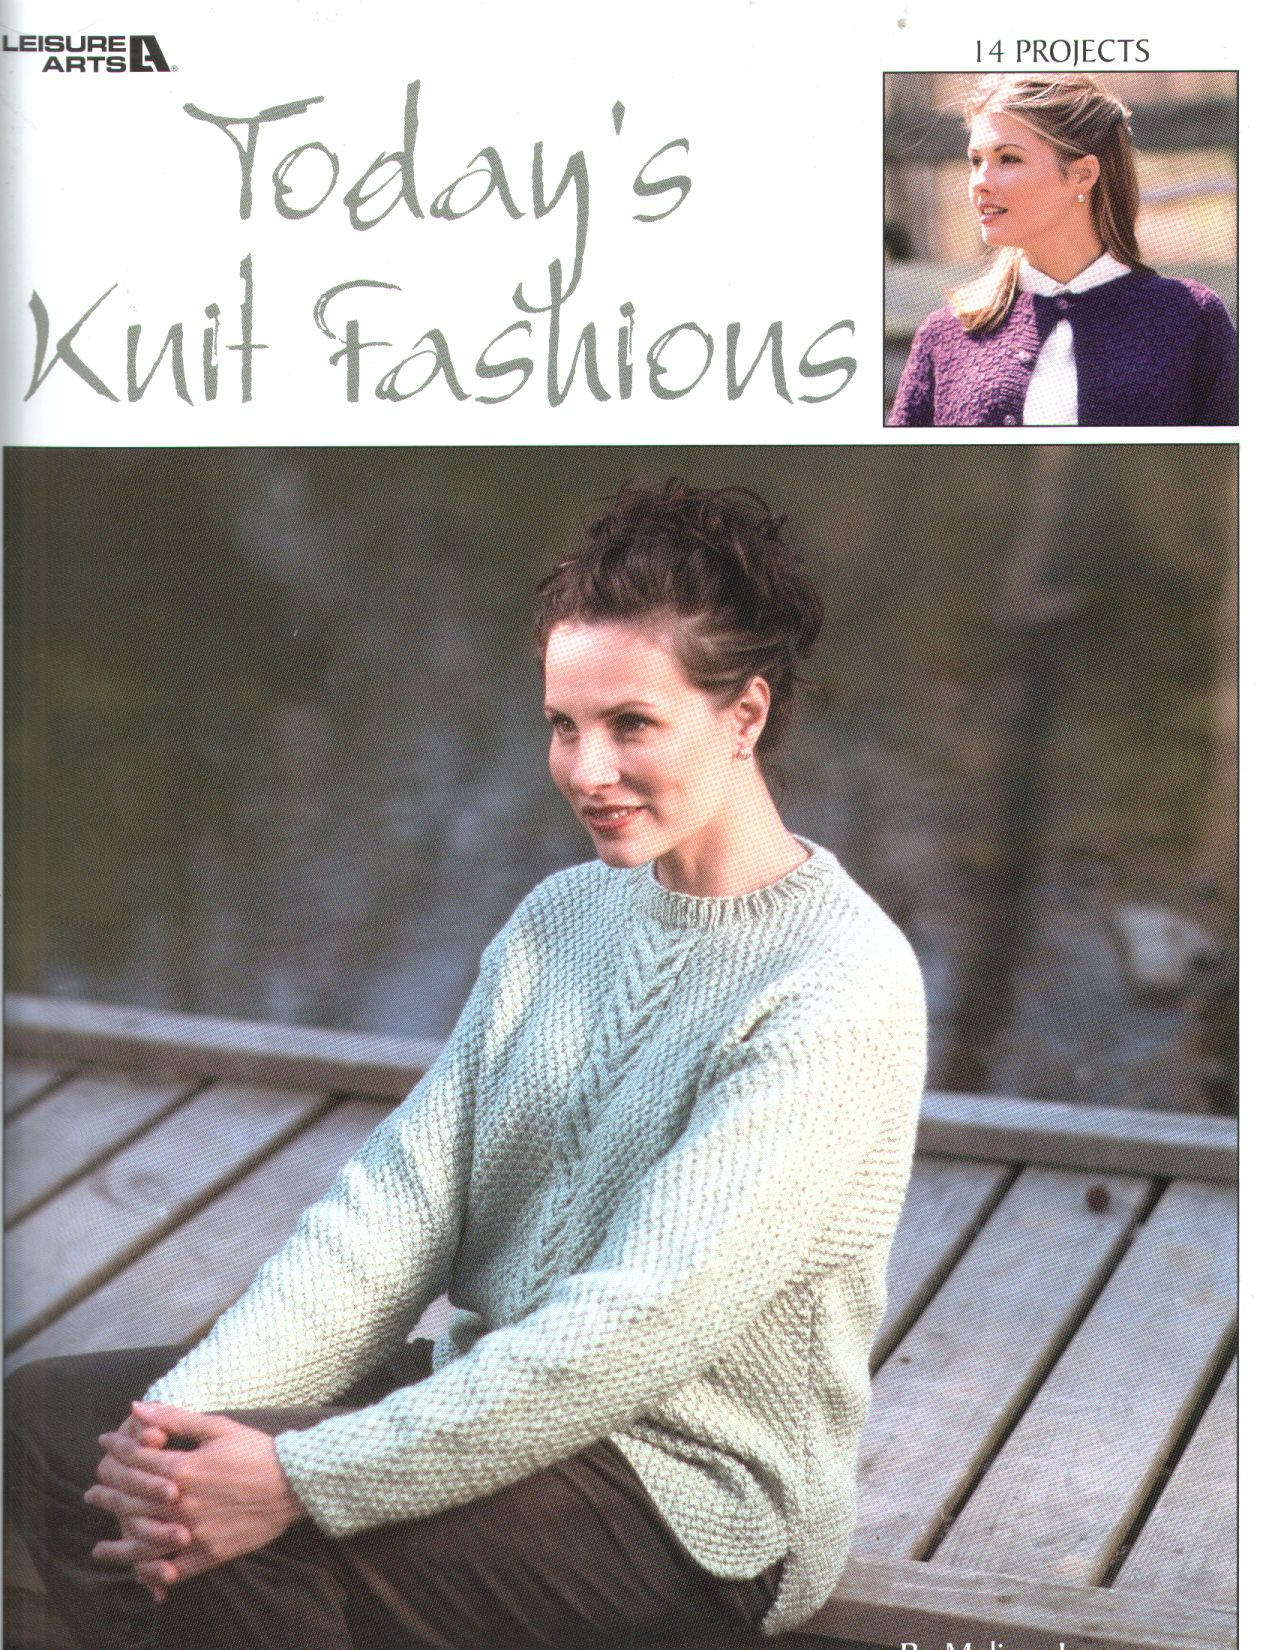 knitfash